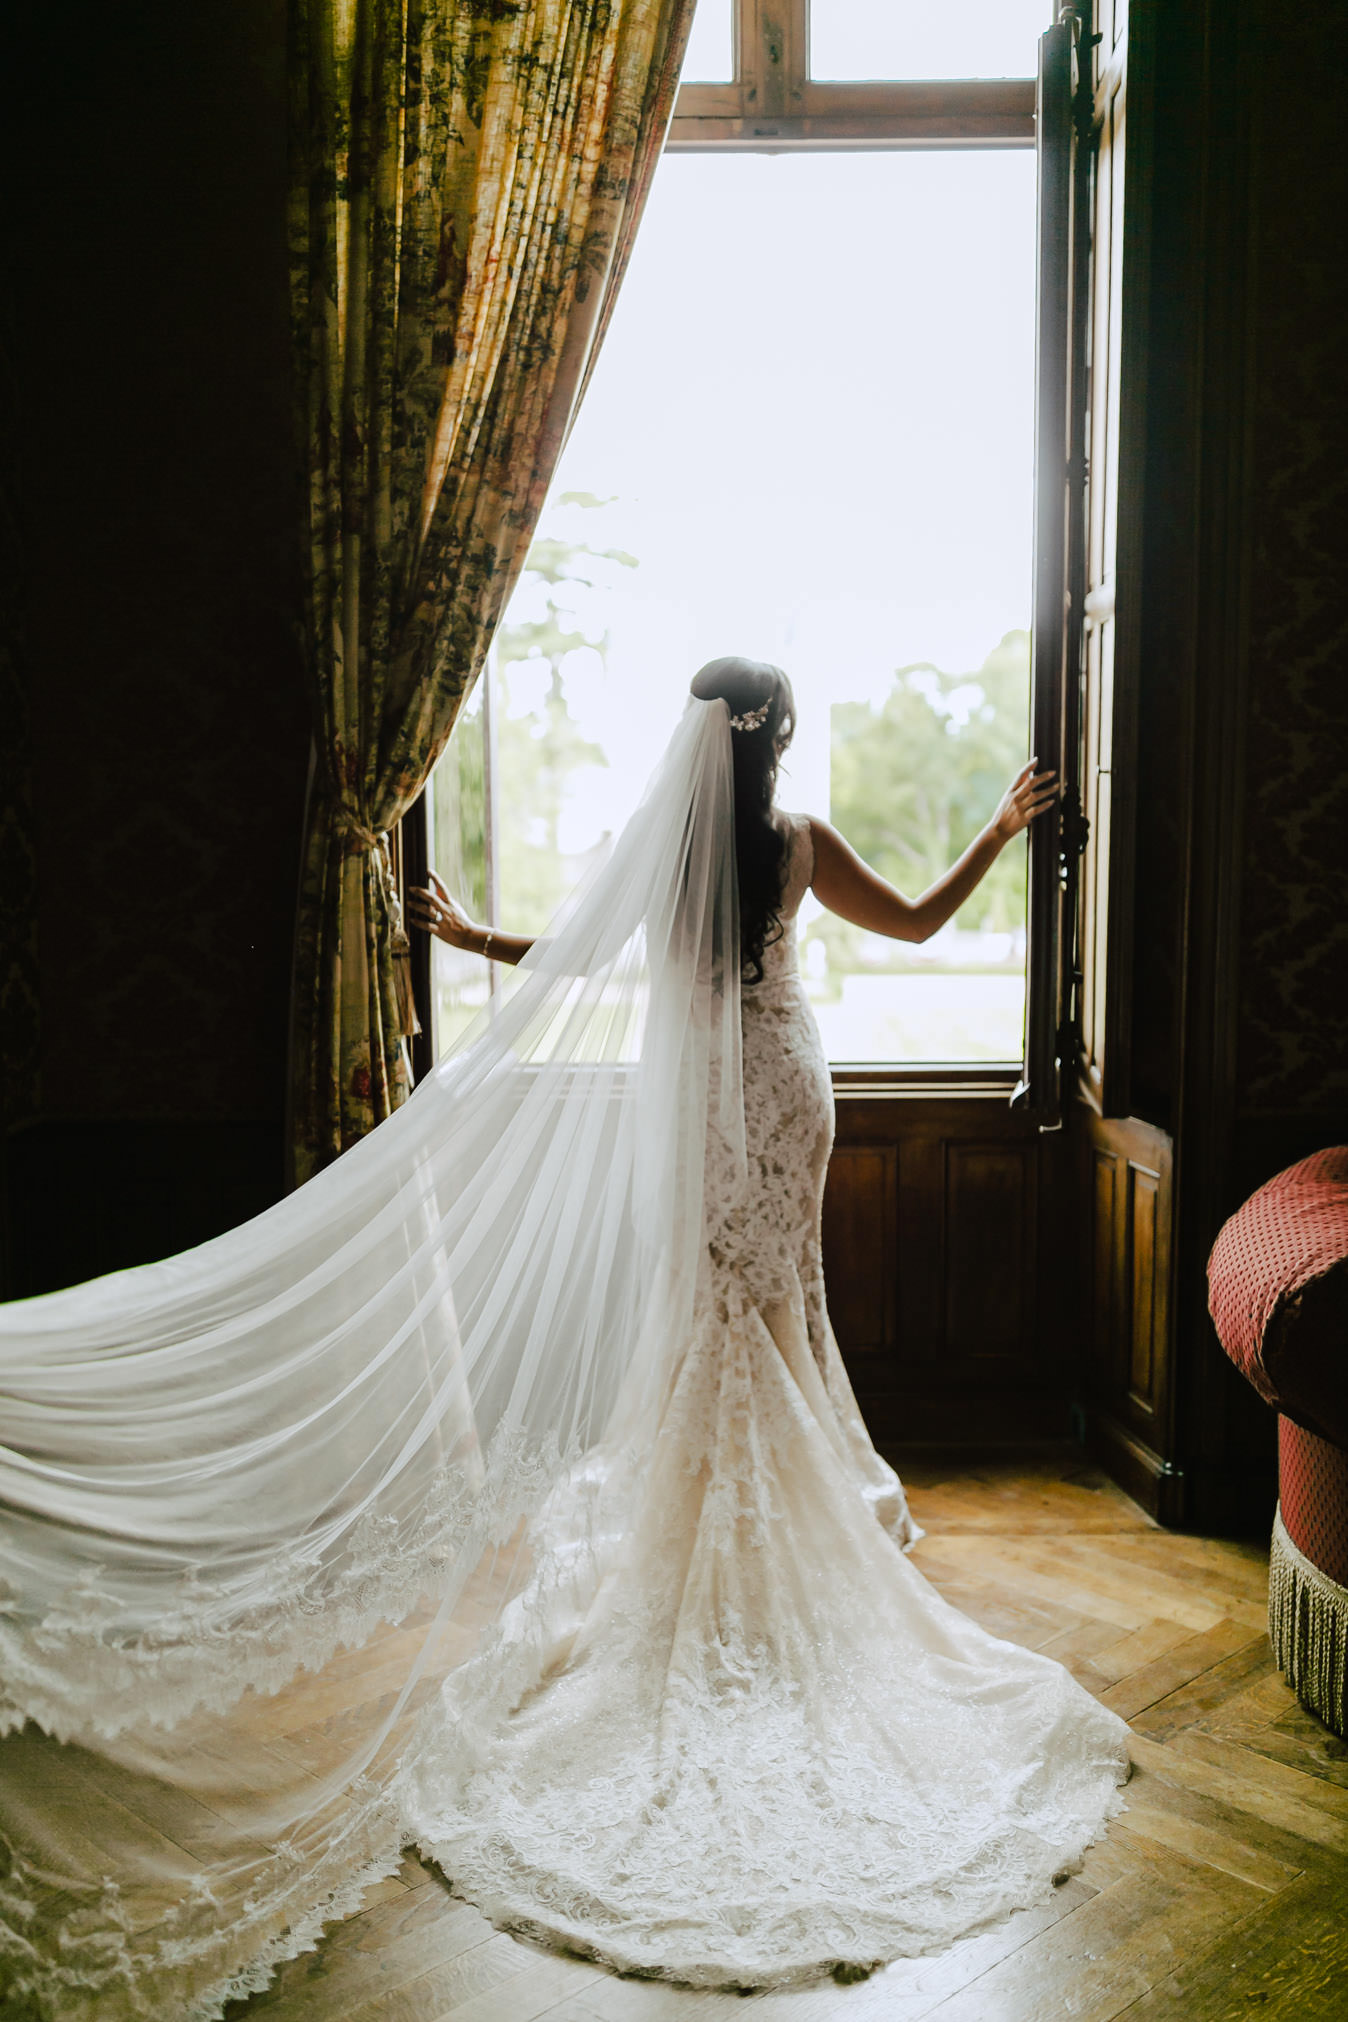 bride at the window with her galia lahav dress